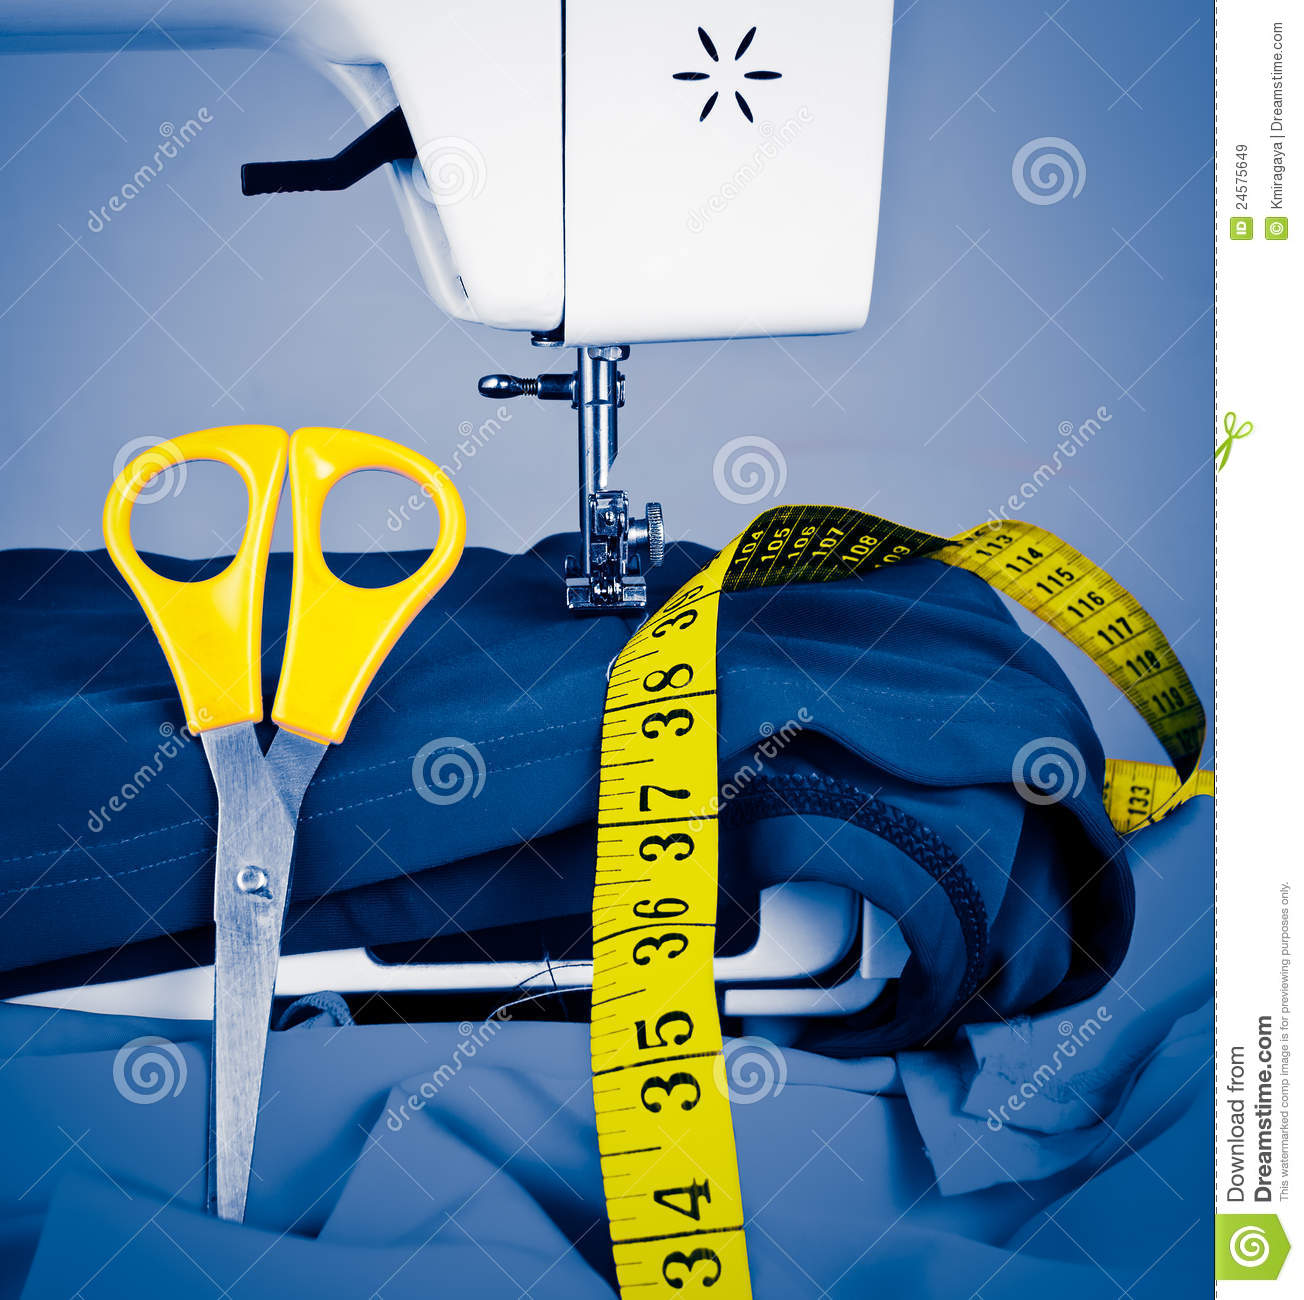 Sewing machine, measuring tape and scissors